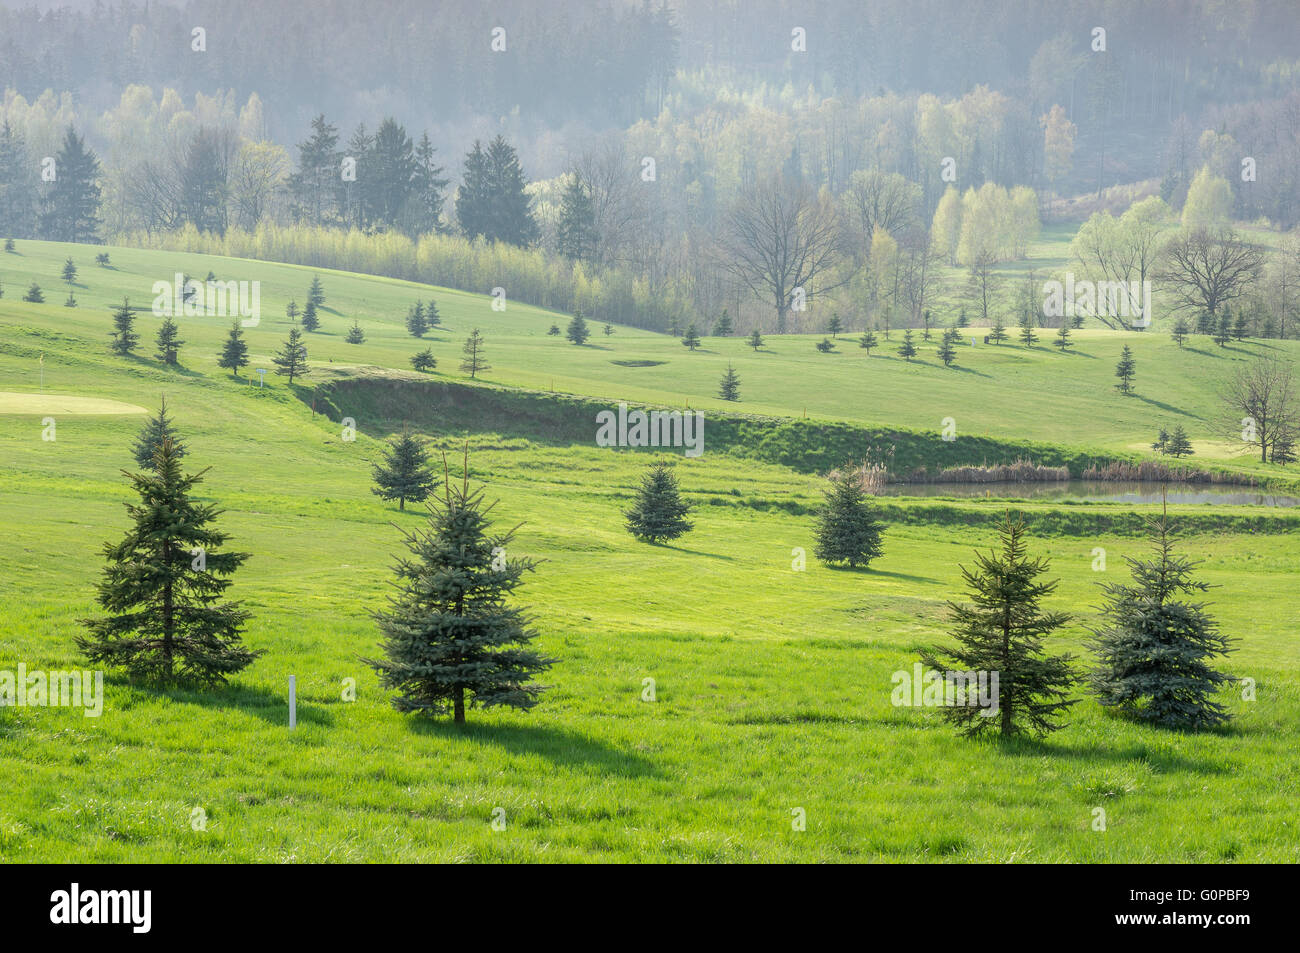 Hills fresh green grass small spruces bright spring sunlight - Stock Image